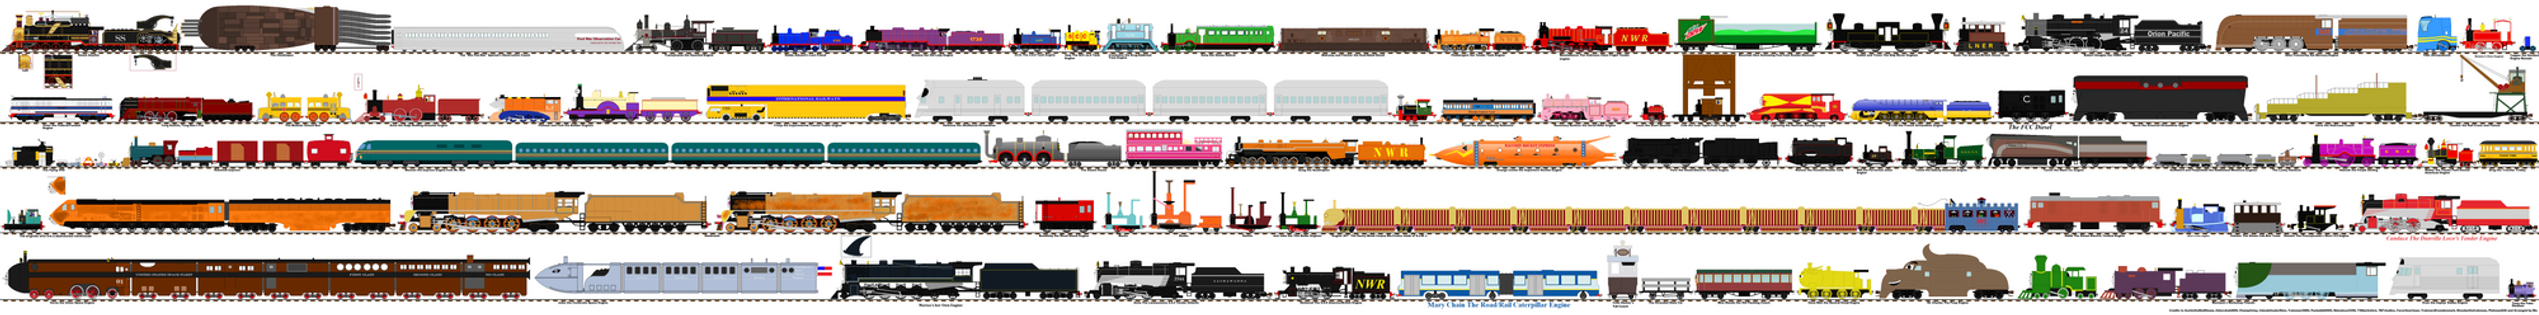 Rejected Thomas Characters 11A by Ultraloco